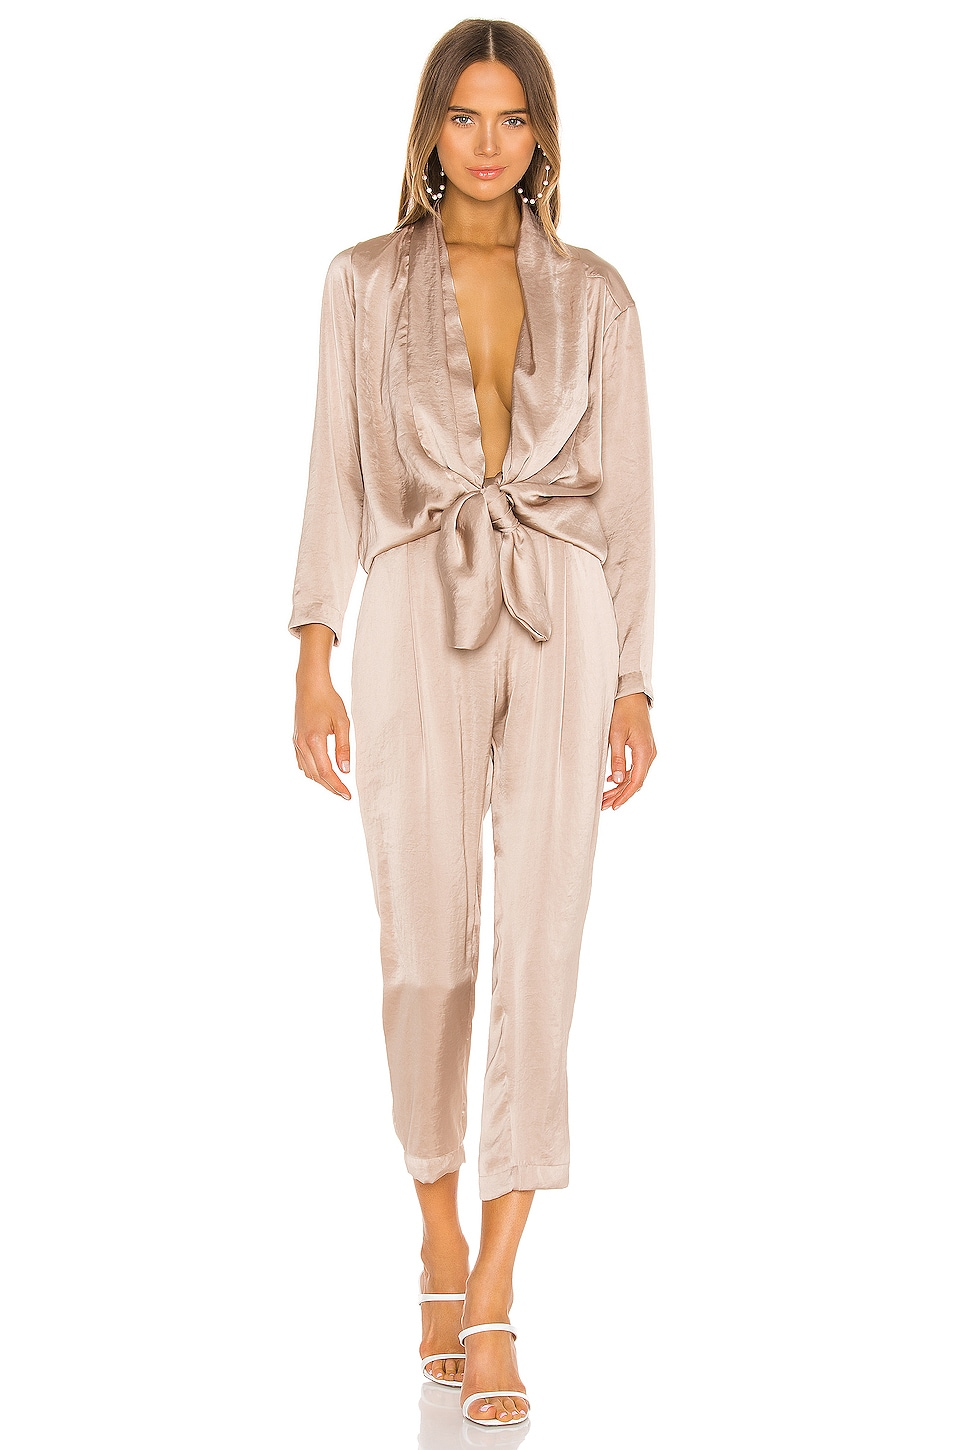 OVERLOVER Stina Jumpsuit in Shell